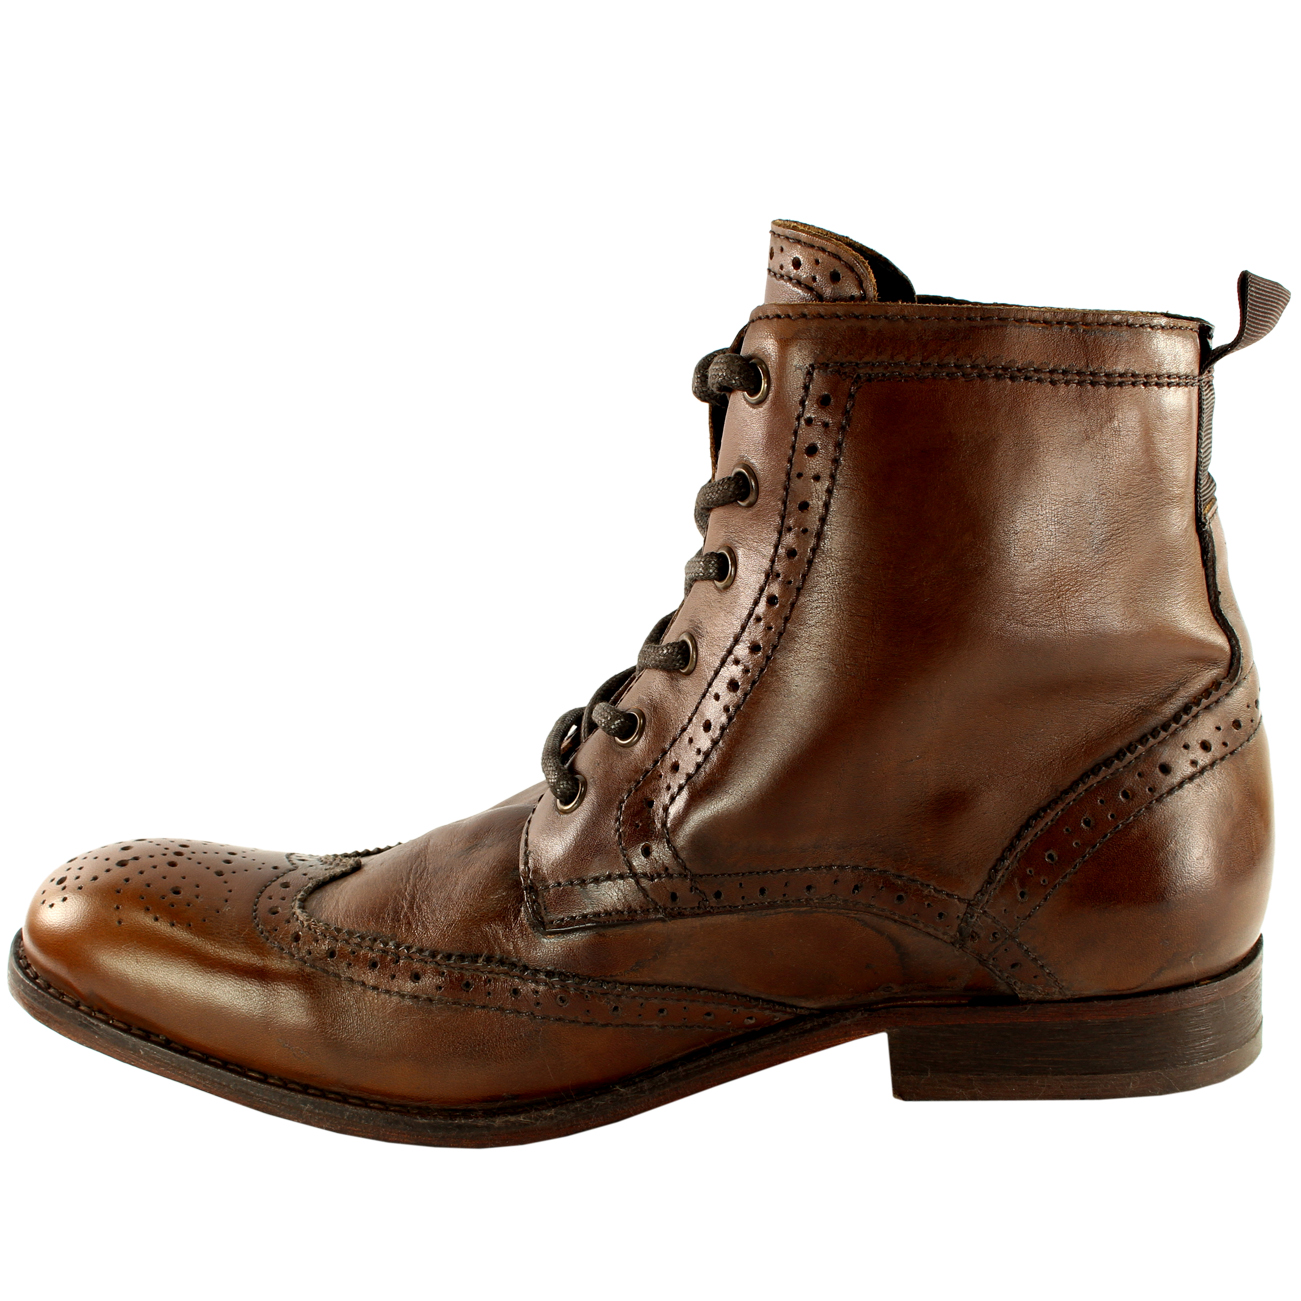 ea88efe6f8ea Mens H By Hudson Angus Brogue Leather Lace Up Smart Ankle Boots UK ...